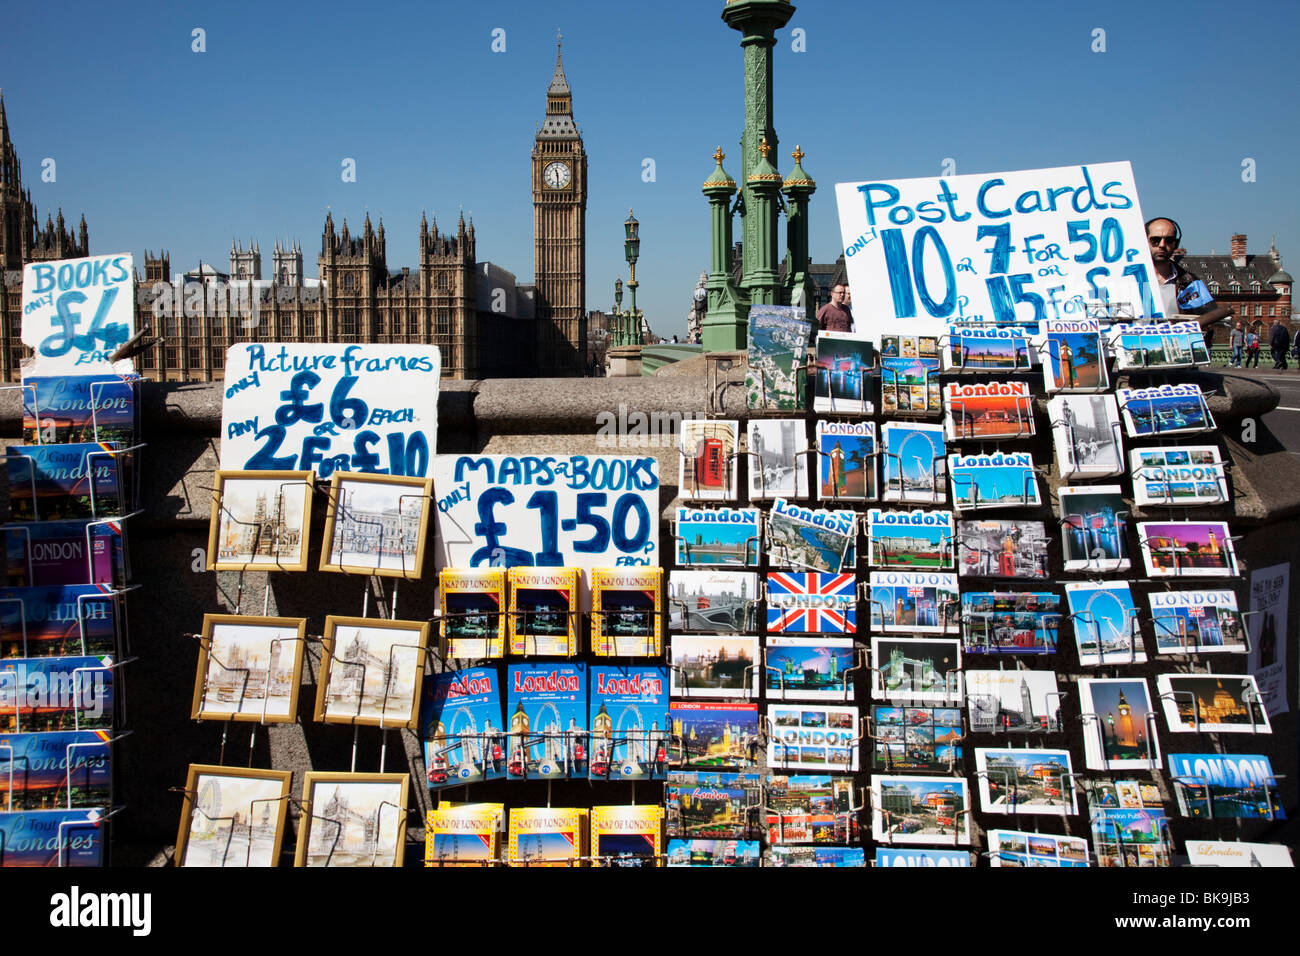 Postcards for sale at Westminster near the Houses of Parliament. London. - Stock Image